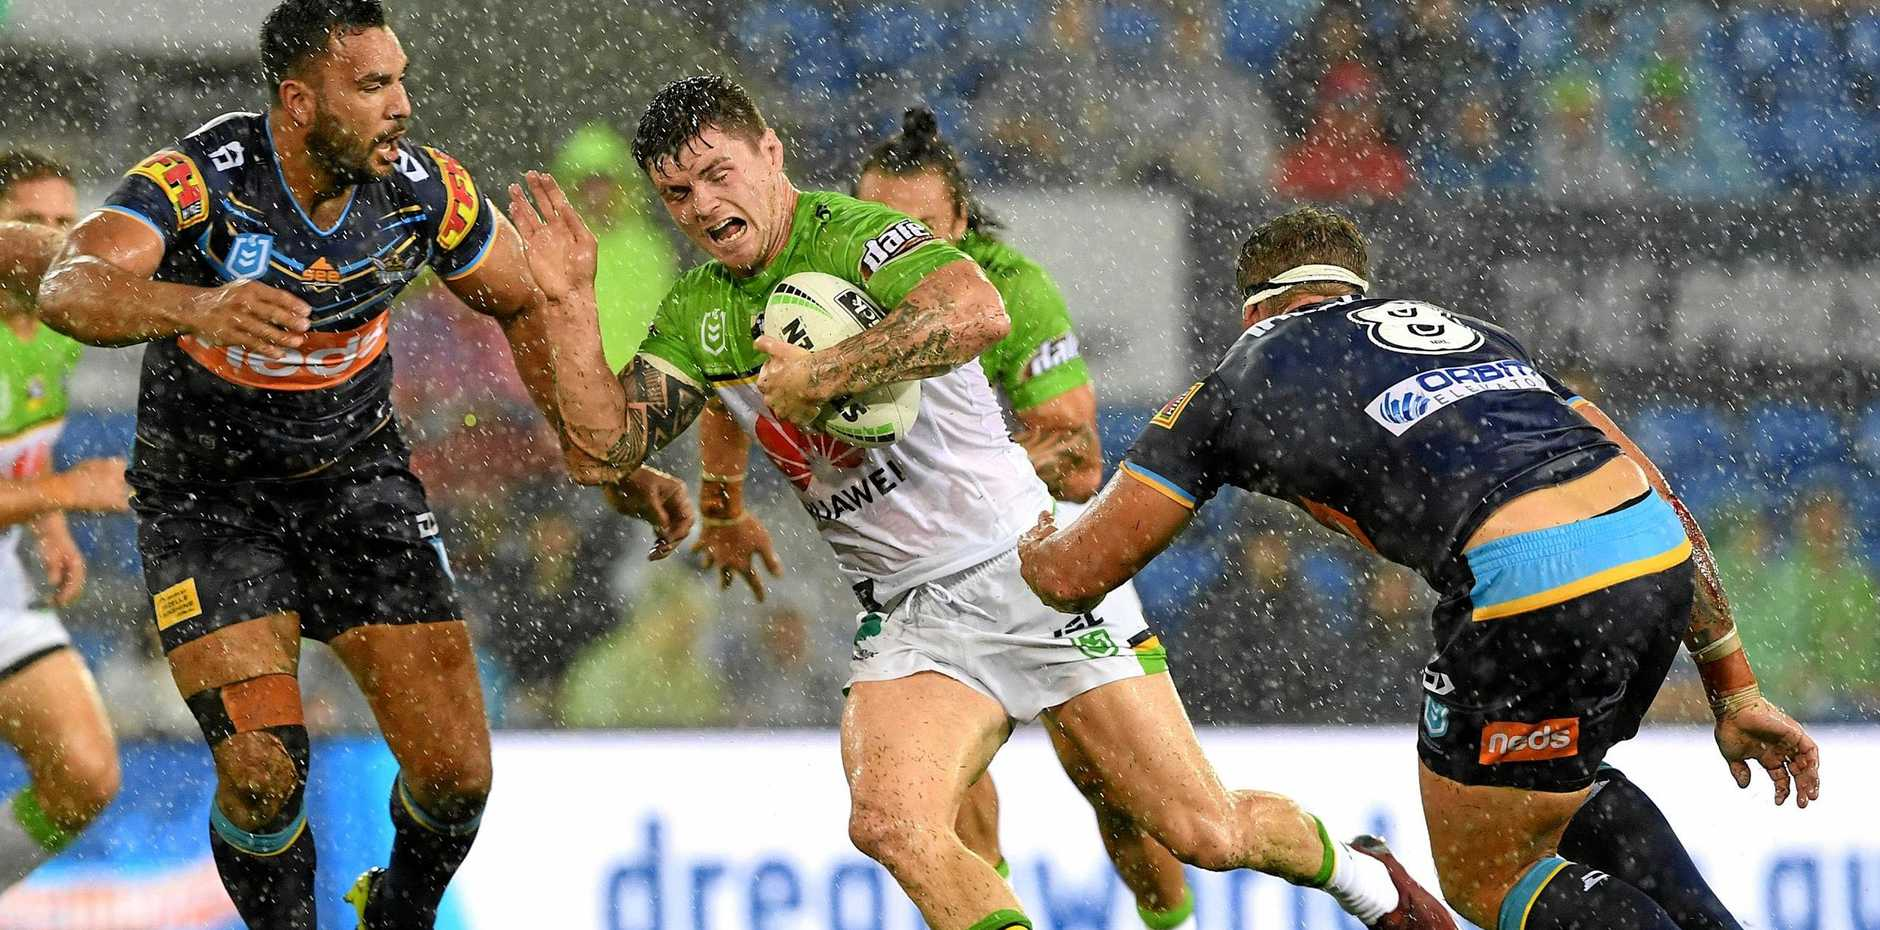 IN ACTION: John Bateman of the Raiders during the Round 1 NRL match between the Gold Coast Titans and the Canberra Raiders at CBus Super Stadium on the Gold Coast on Sunday.